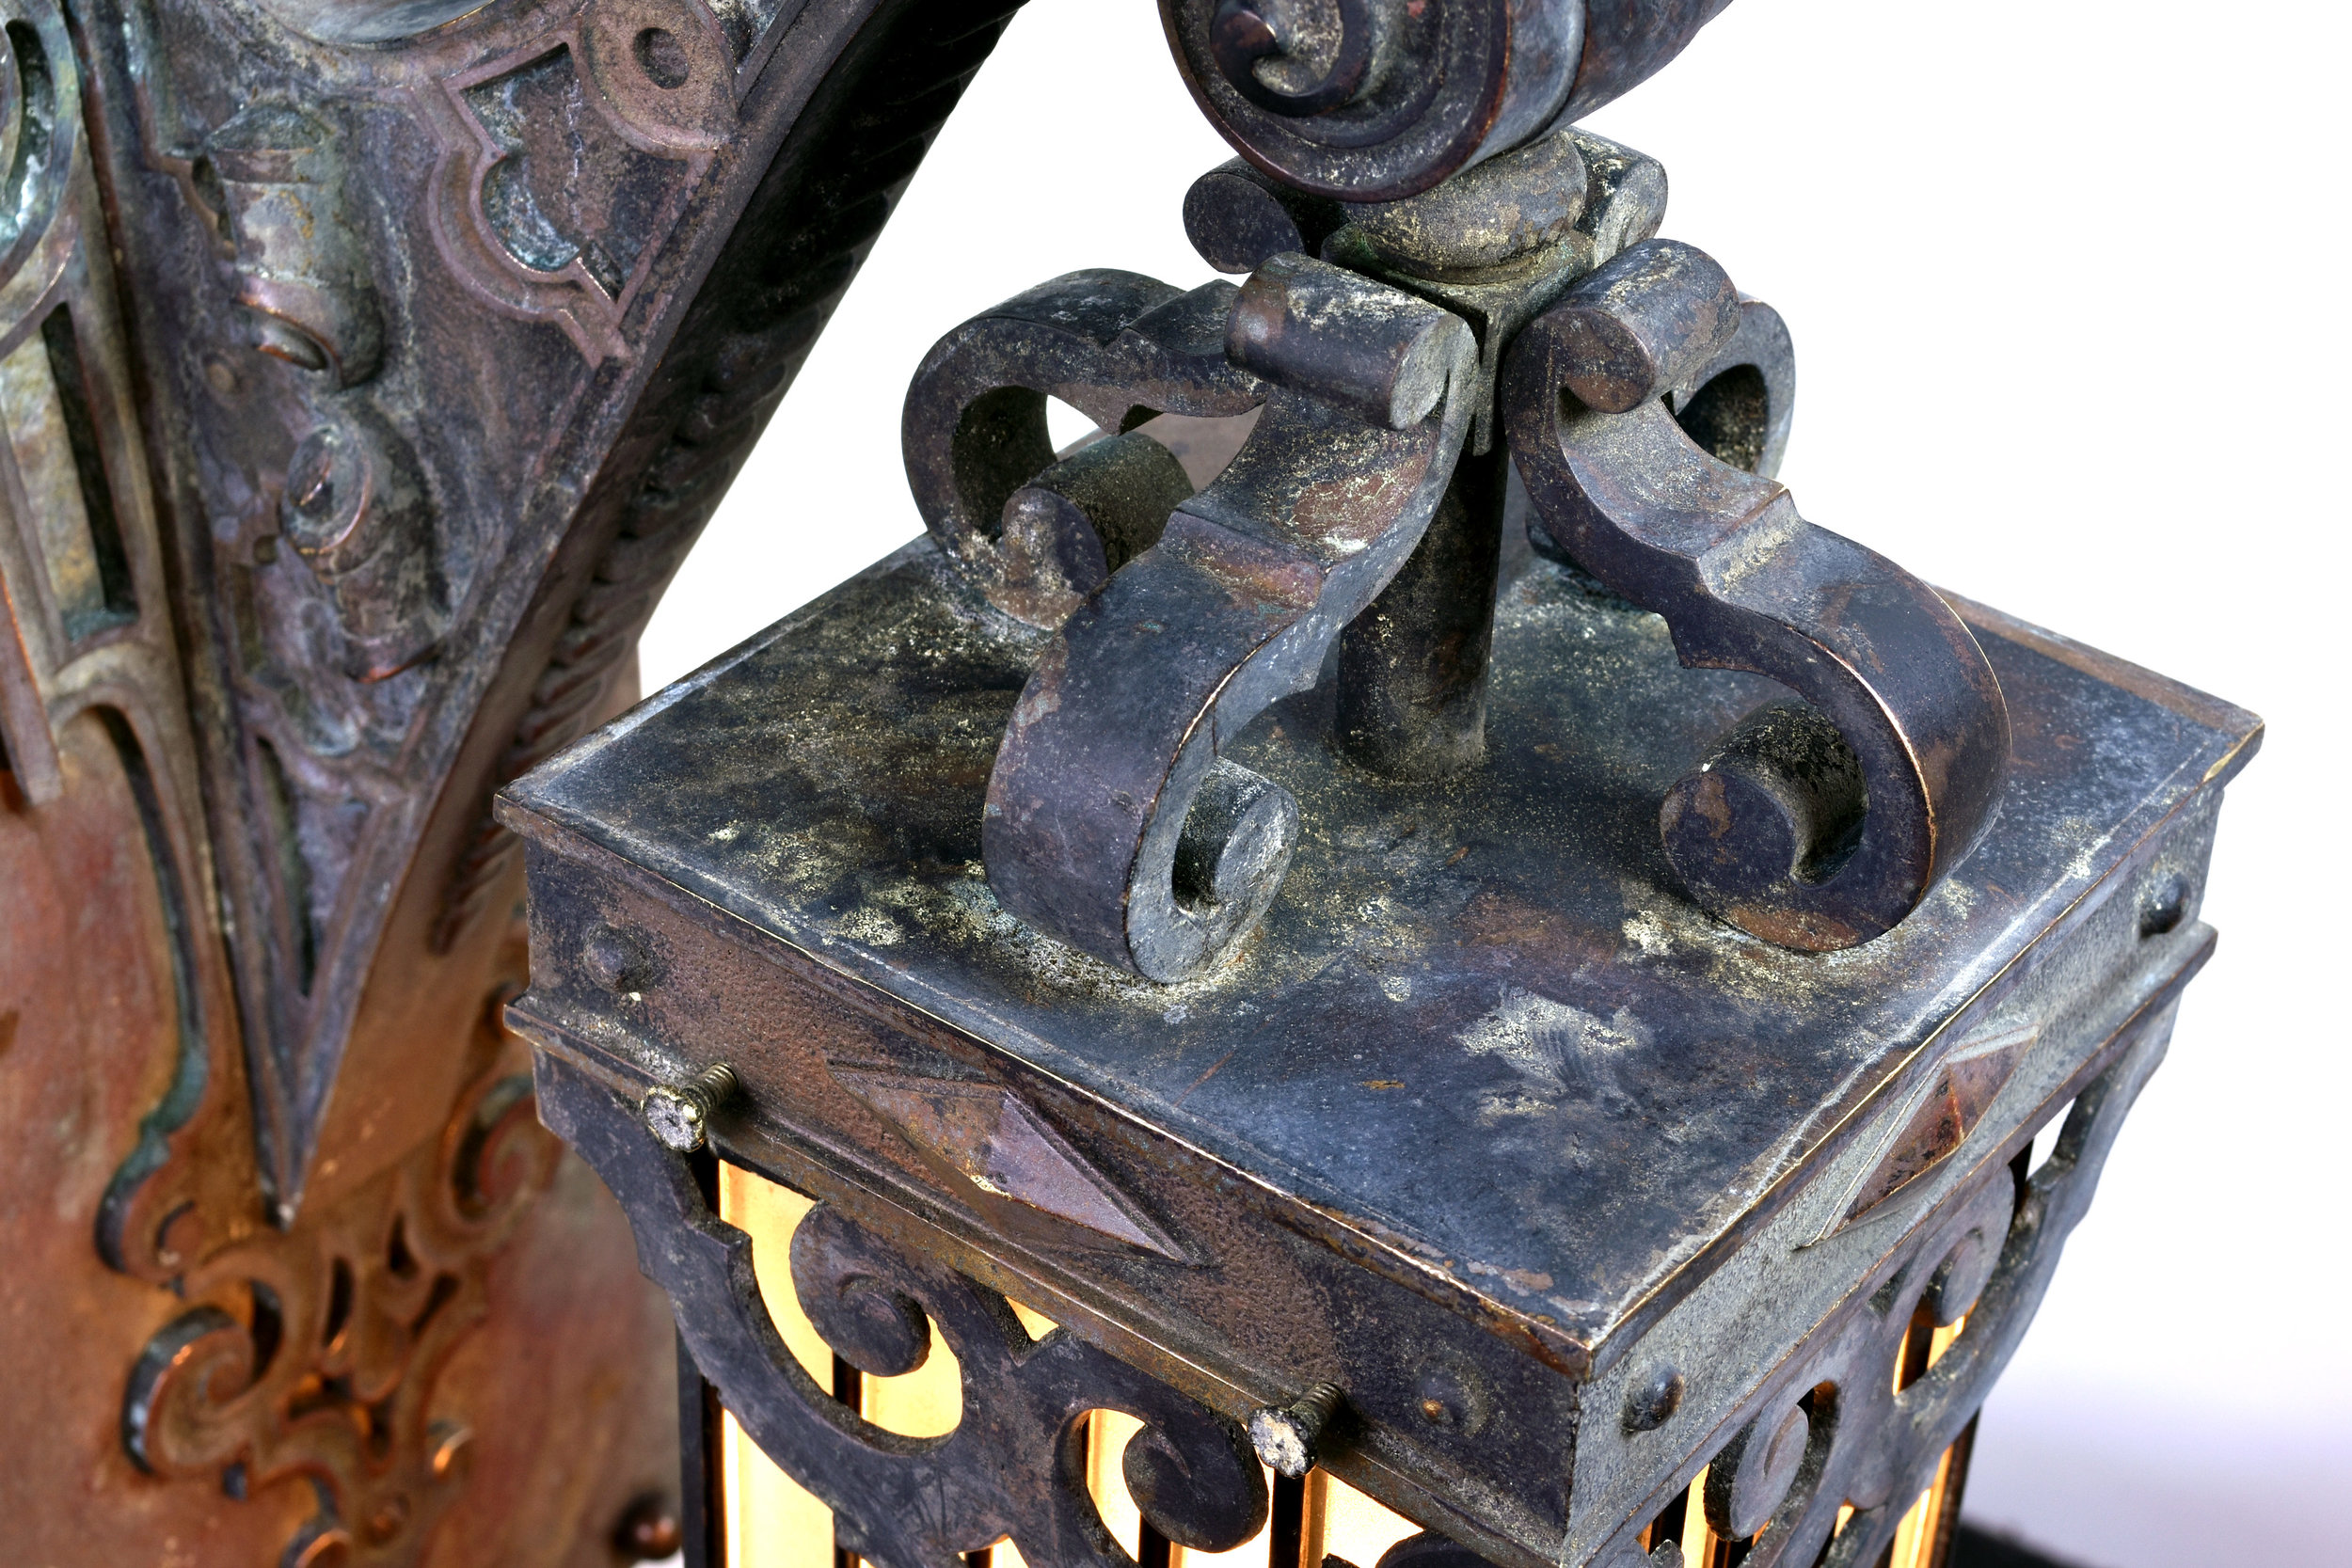 47236-cast-bronze-sconce-with-leaded-glass-shade-upper-view.jpg